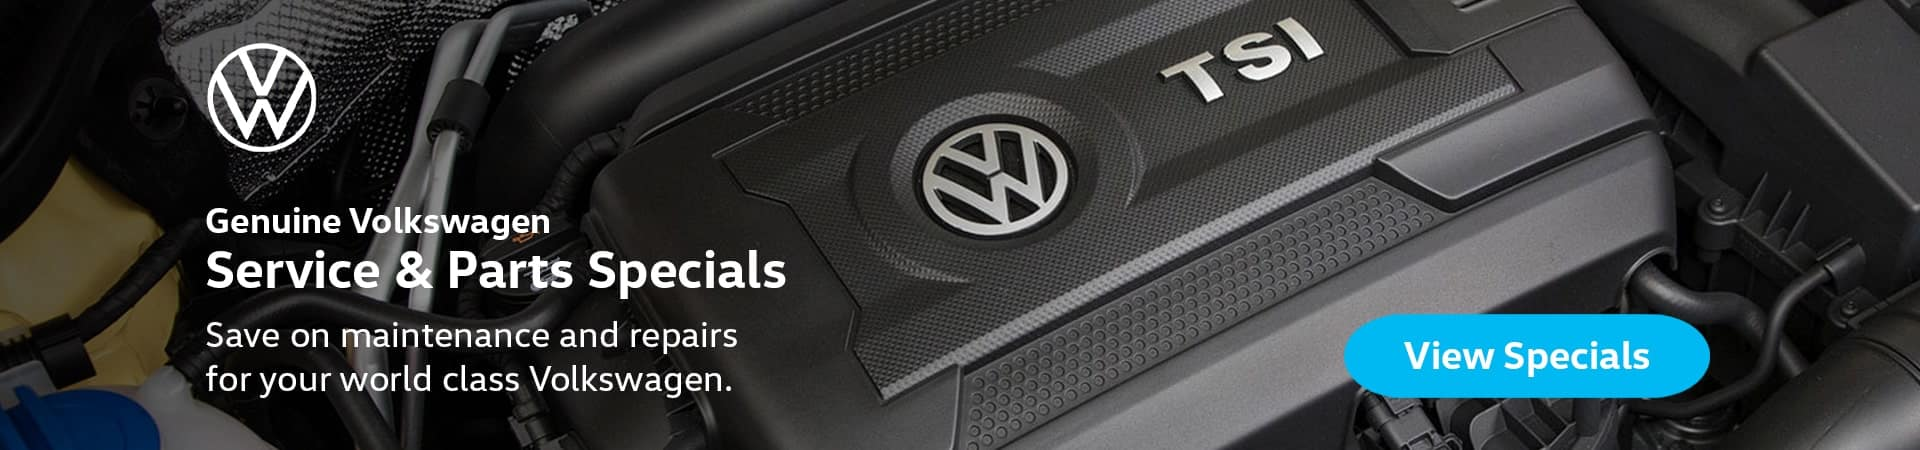 vw-service-homepage-banner-1920x450-min